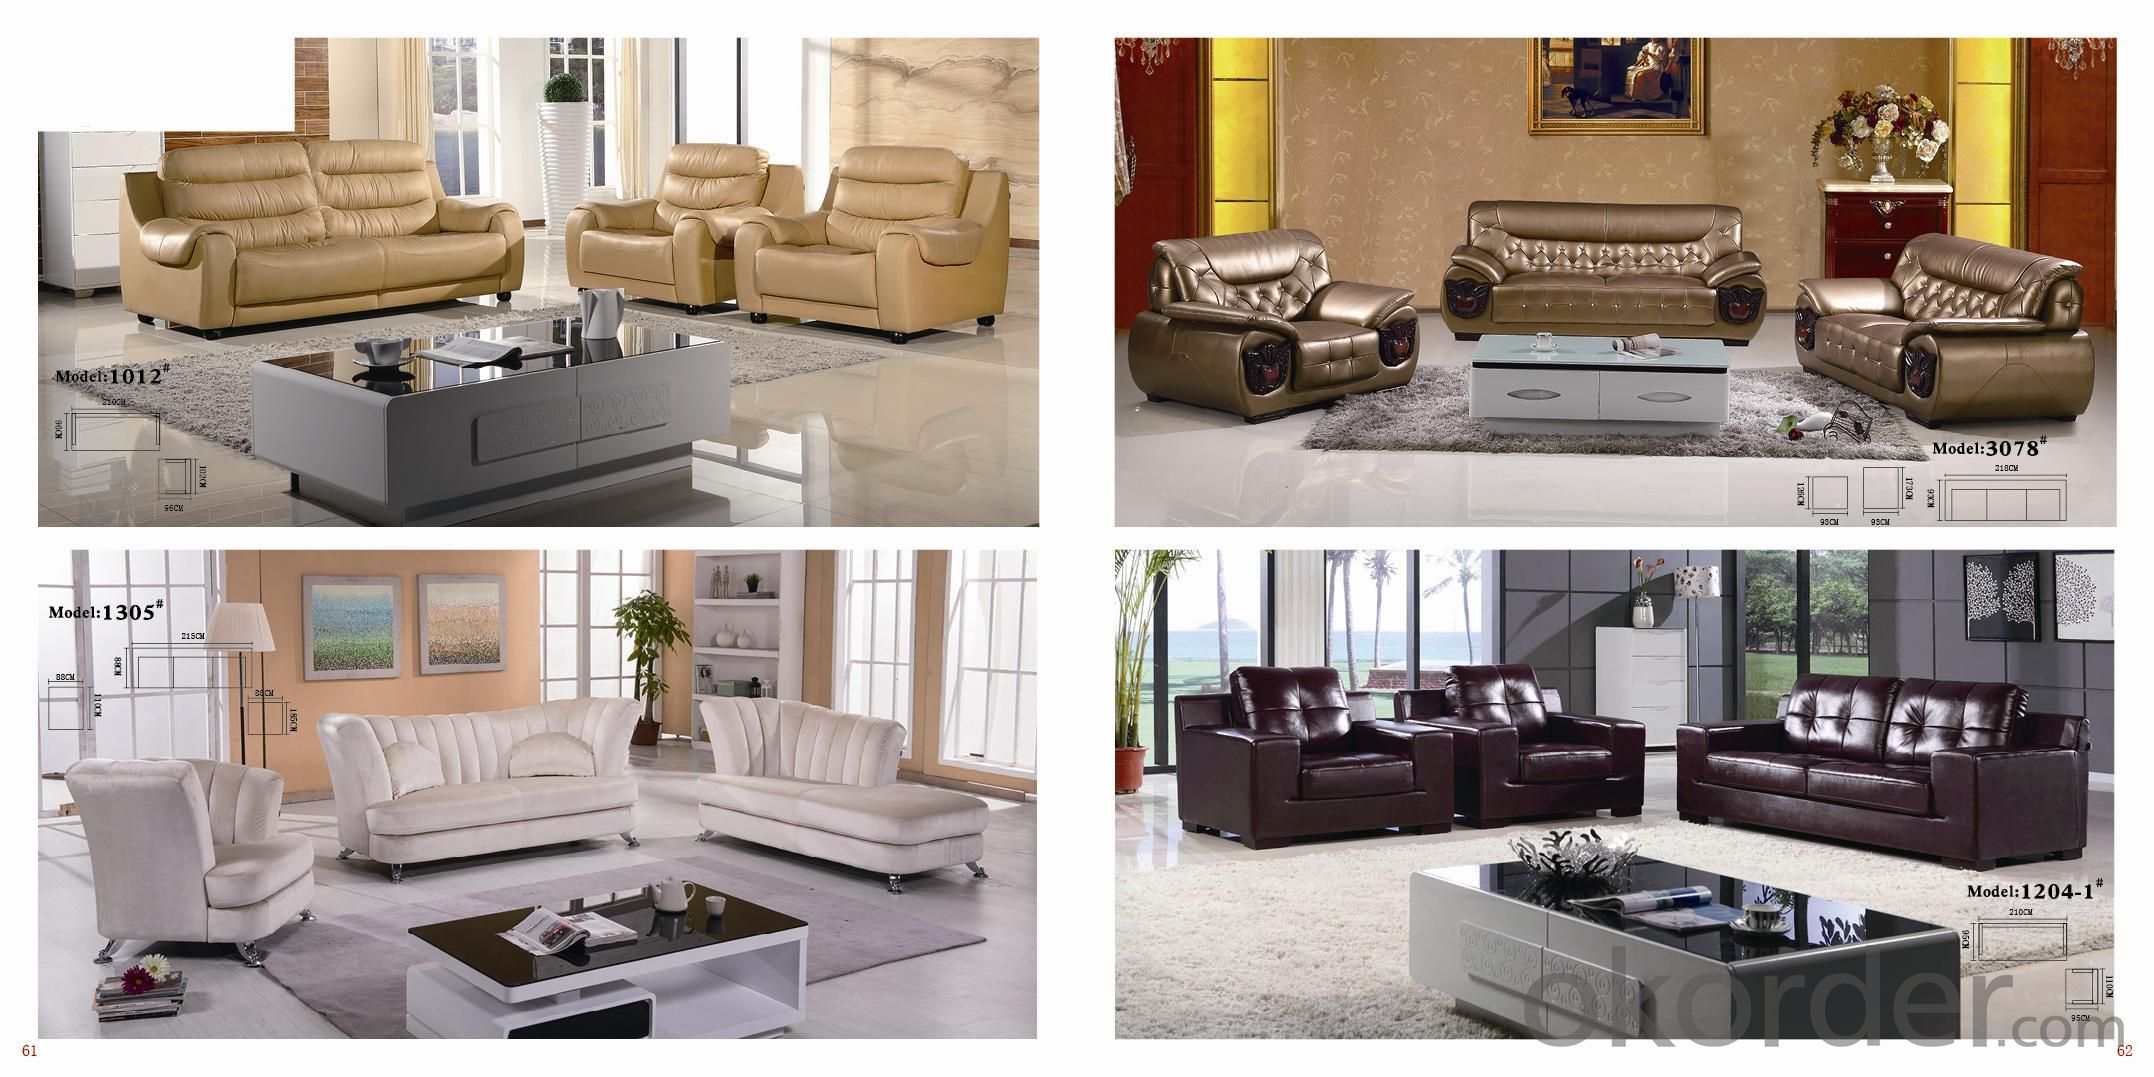 CNBM US popular leather sofa set CMAX-03